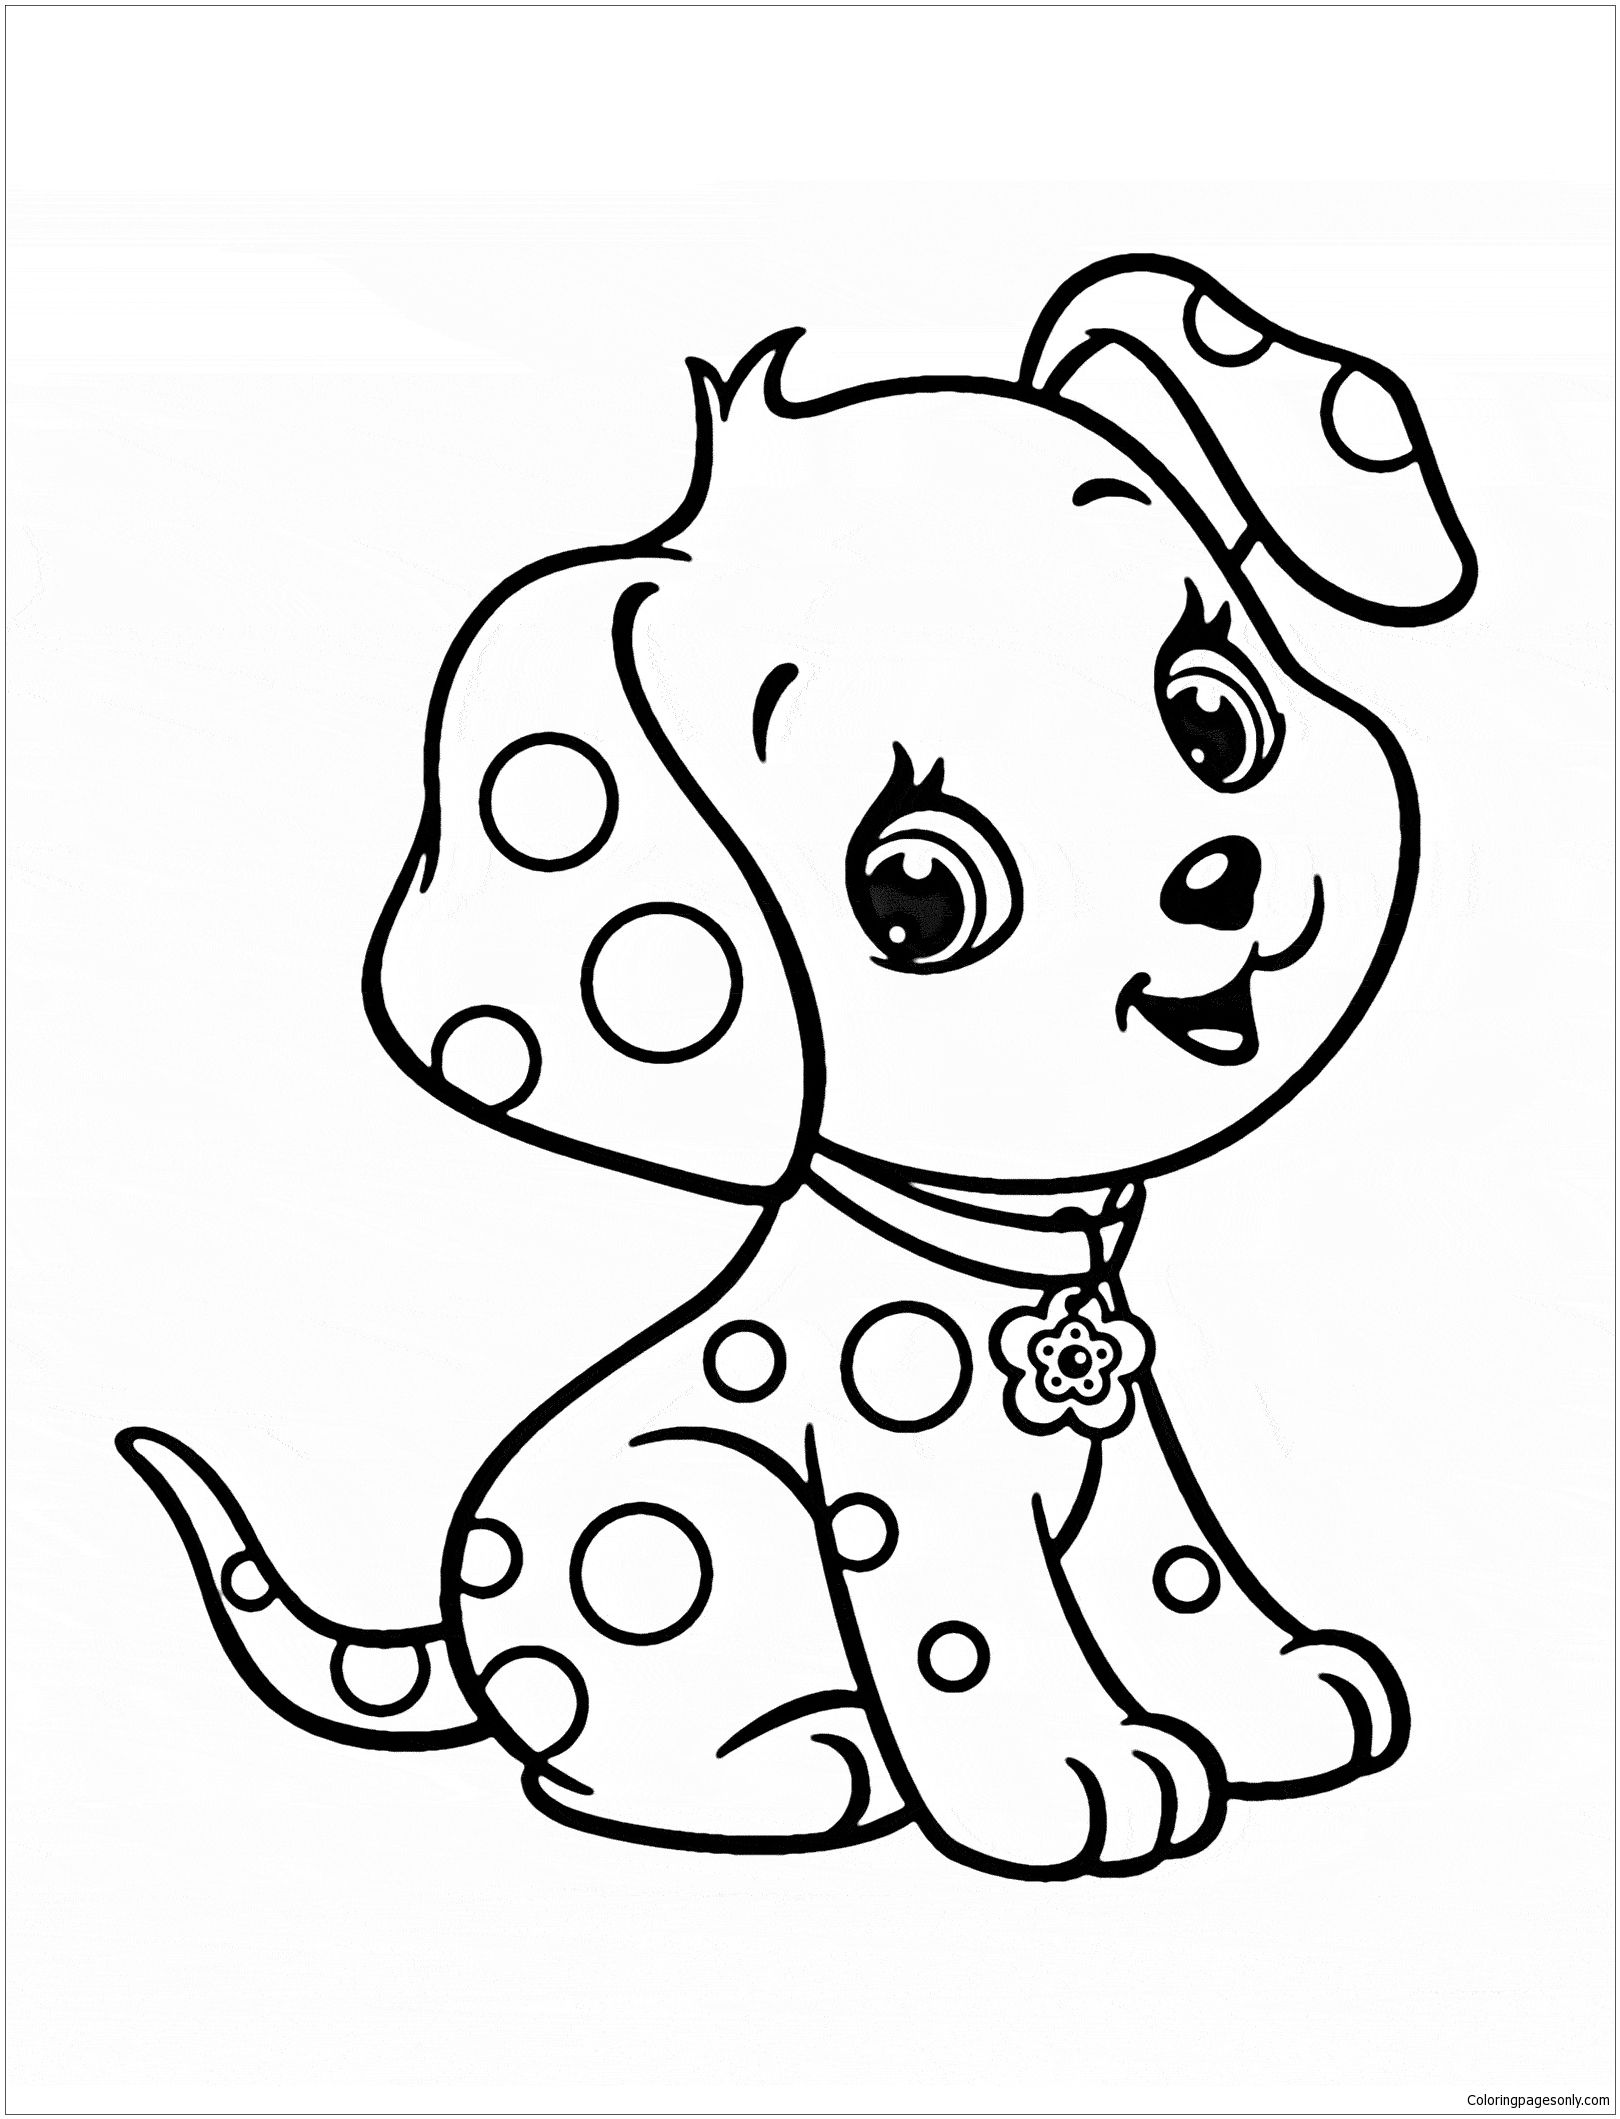 cute dog coloring pages best coloring page dog dogs and puppies coloring pagesfree cute coloring pages dog